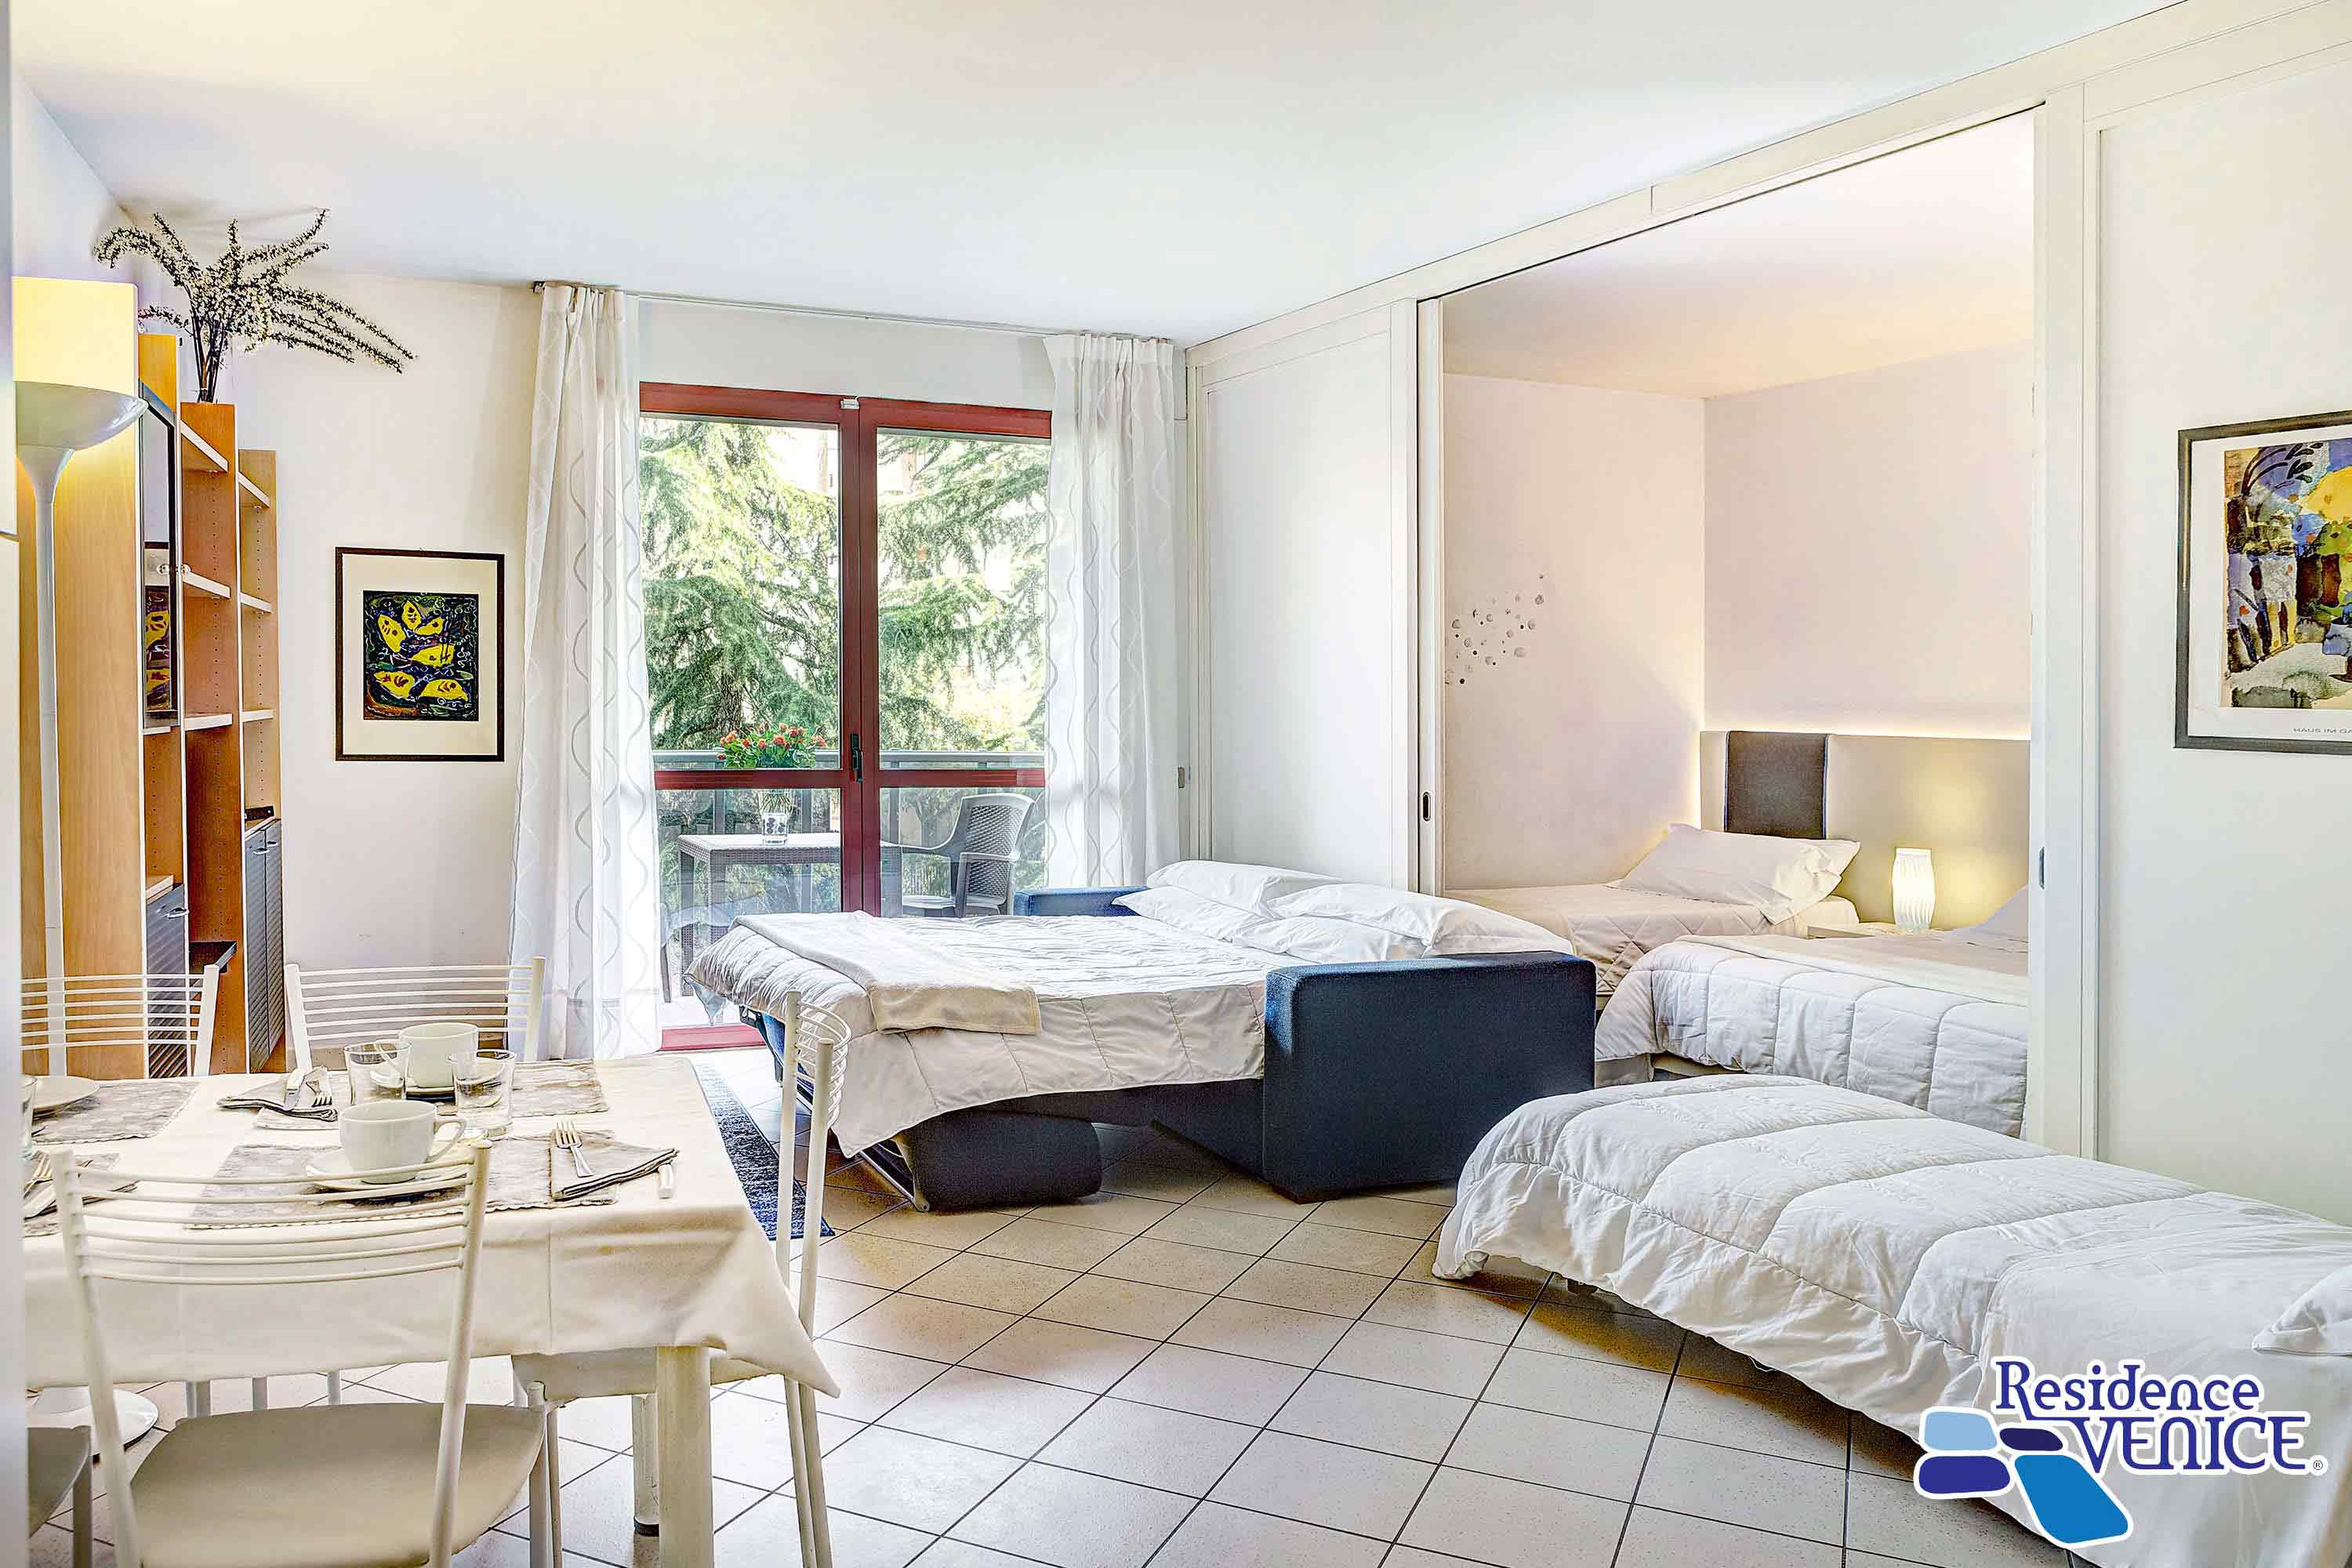 Residence Venice Luxury Family Apartment 4